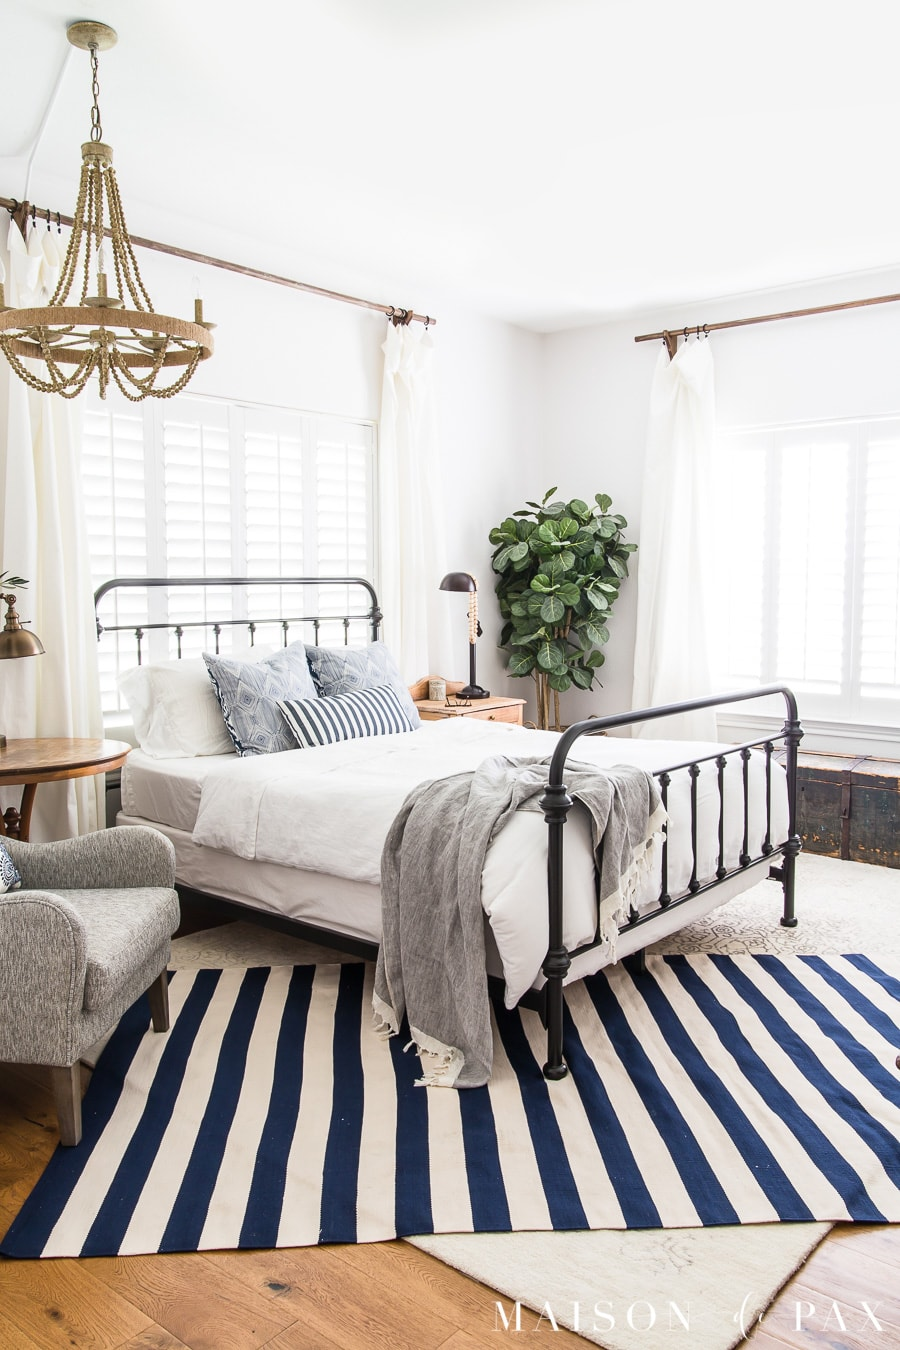 . Blue and White Bedroom Ideas for Summer   Maison de Pax